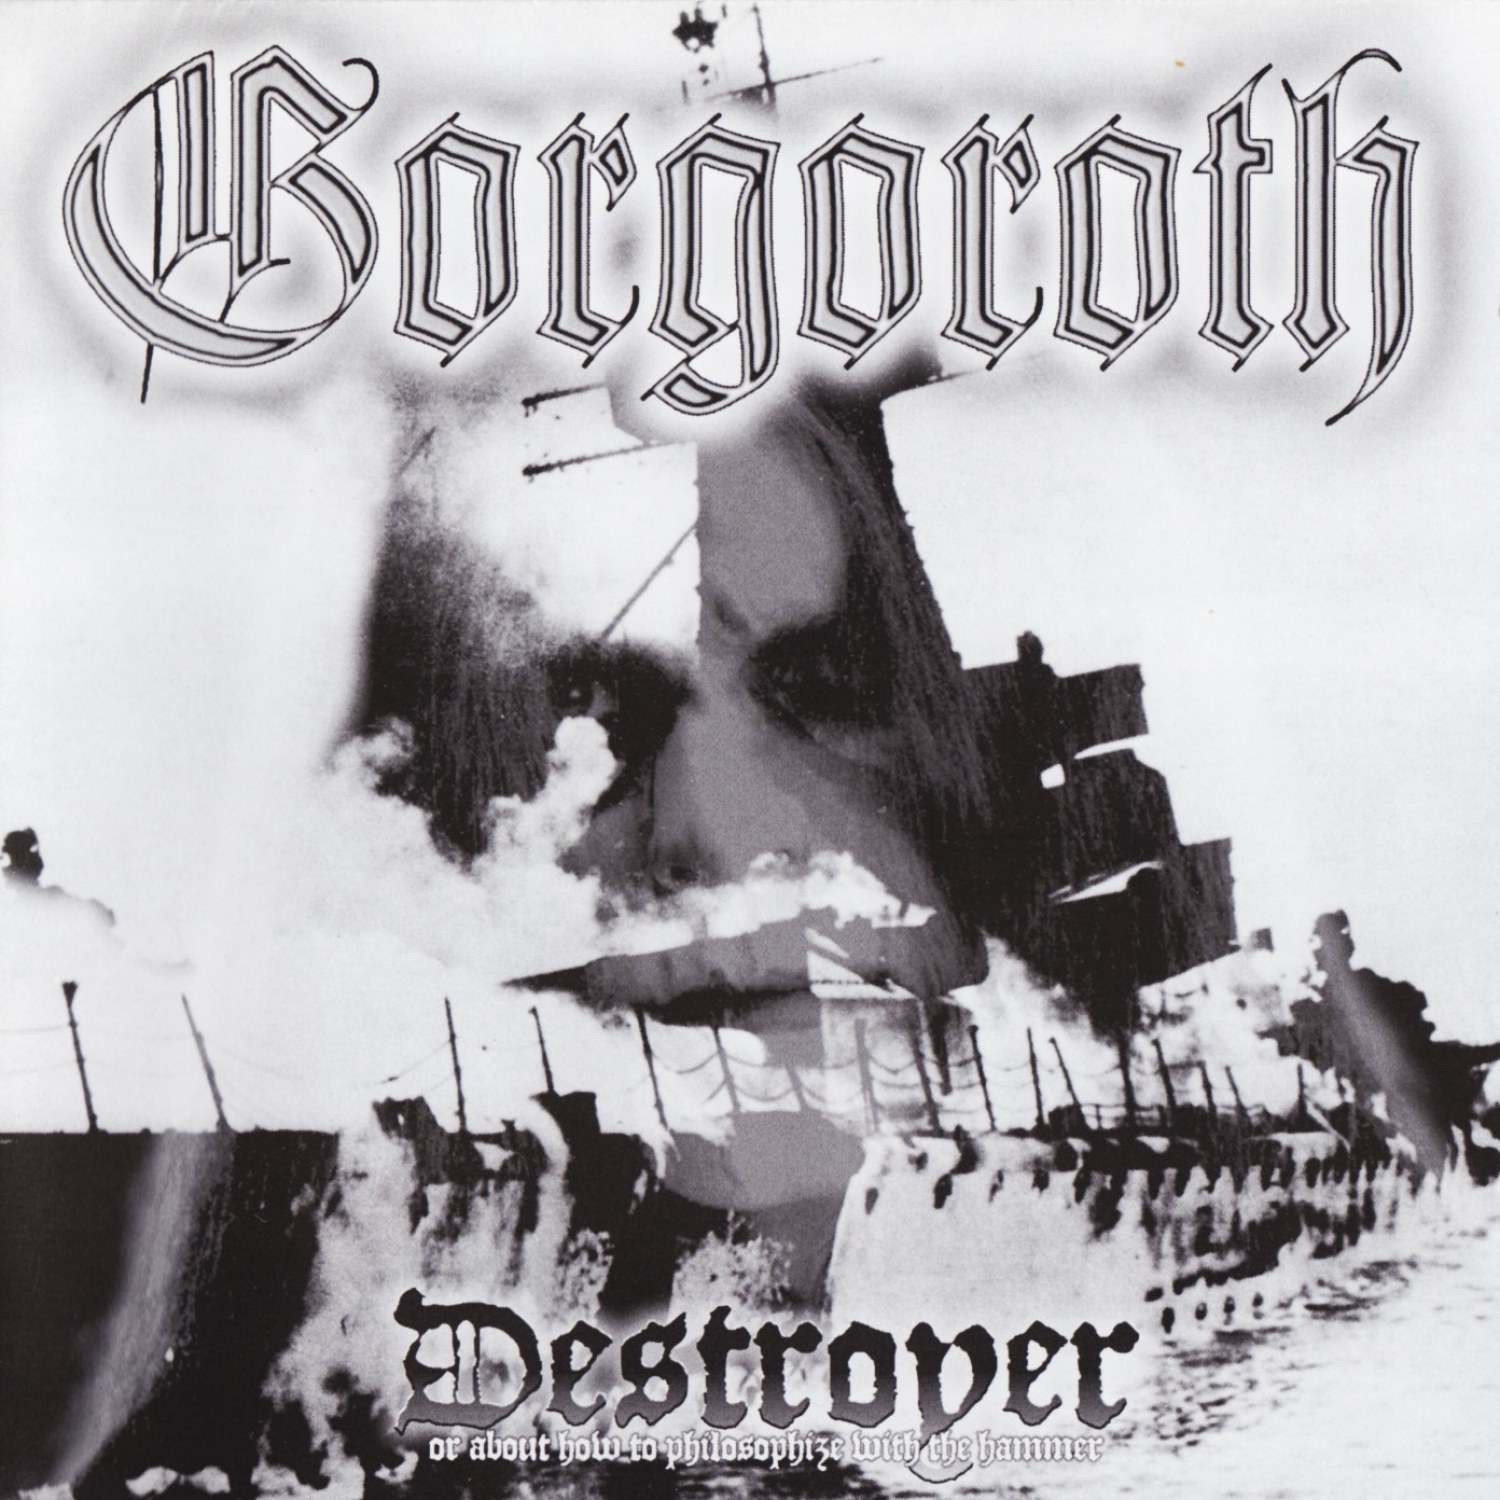 Review for Gorgoroth - Destroyer (or, About How to Philosophize with the Hammer)